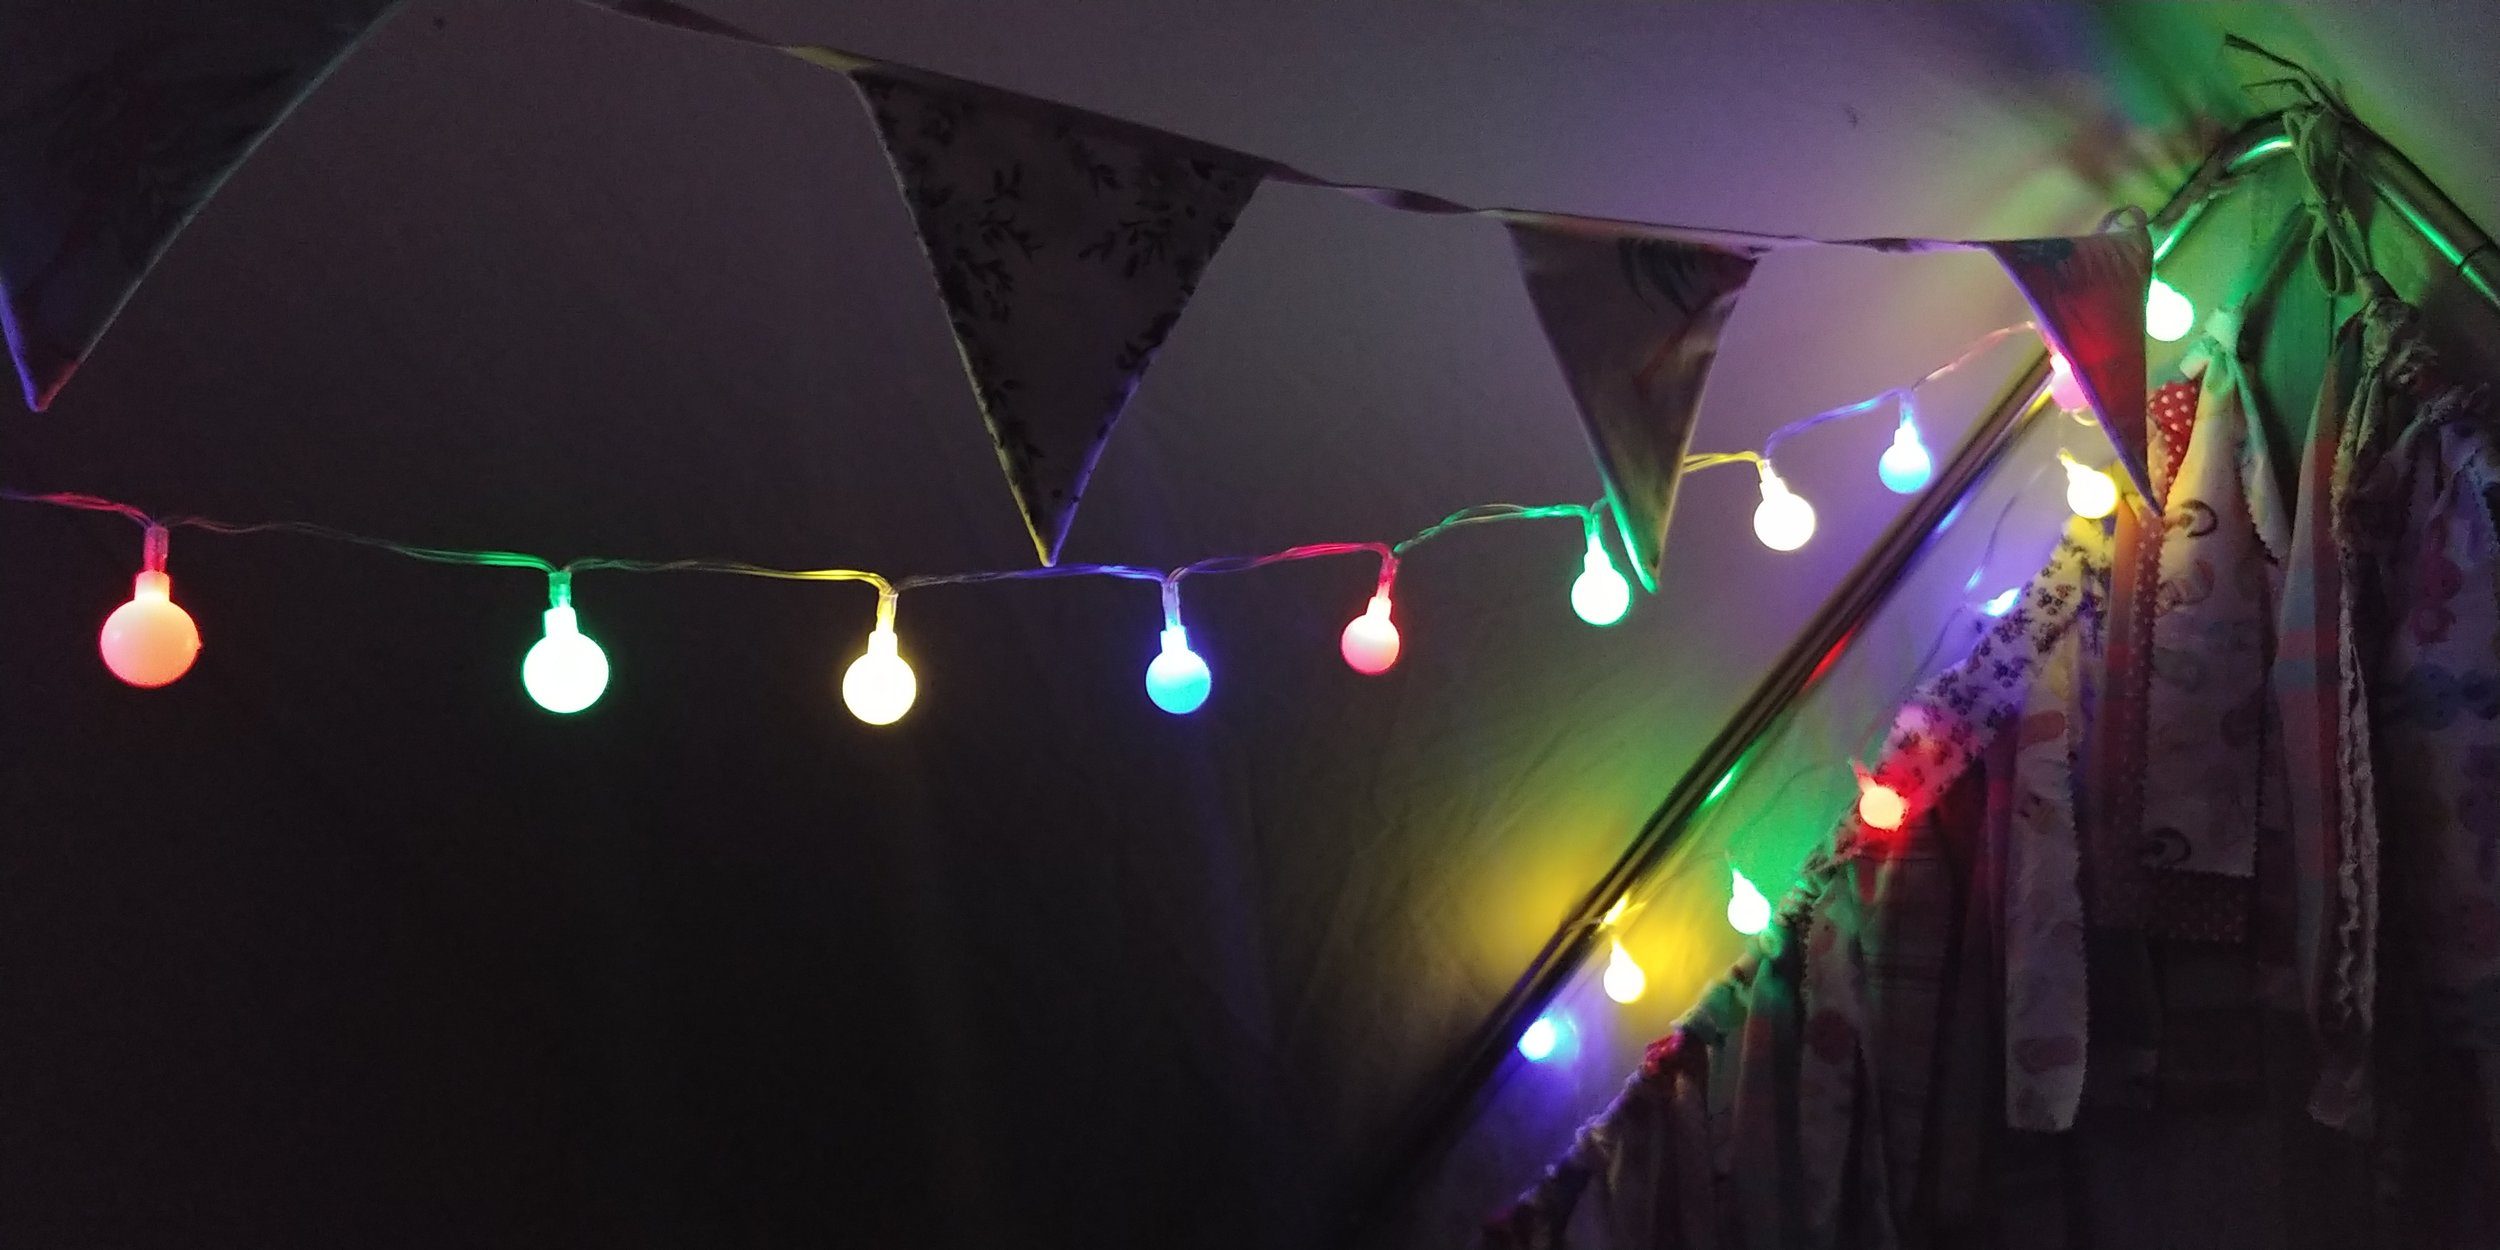 Bunting and battery-operated festoon lights inside the tent, creating a classic Christmas grotto effect :-)